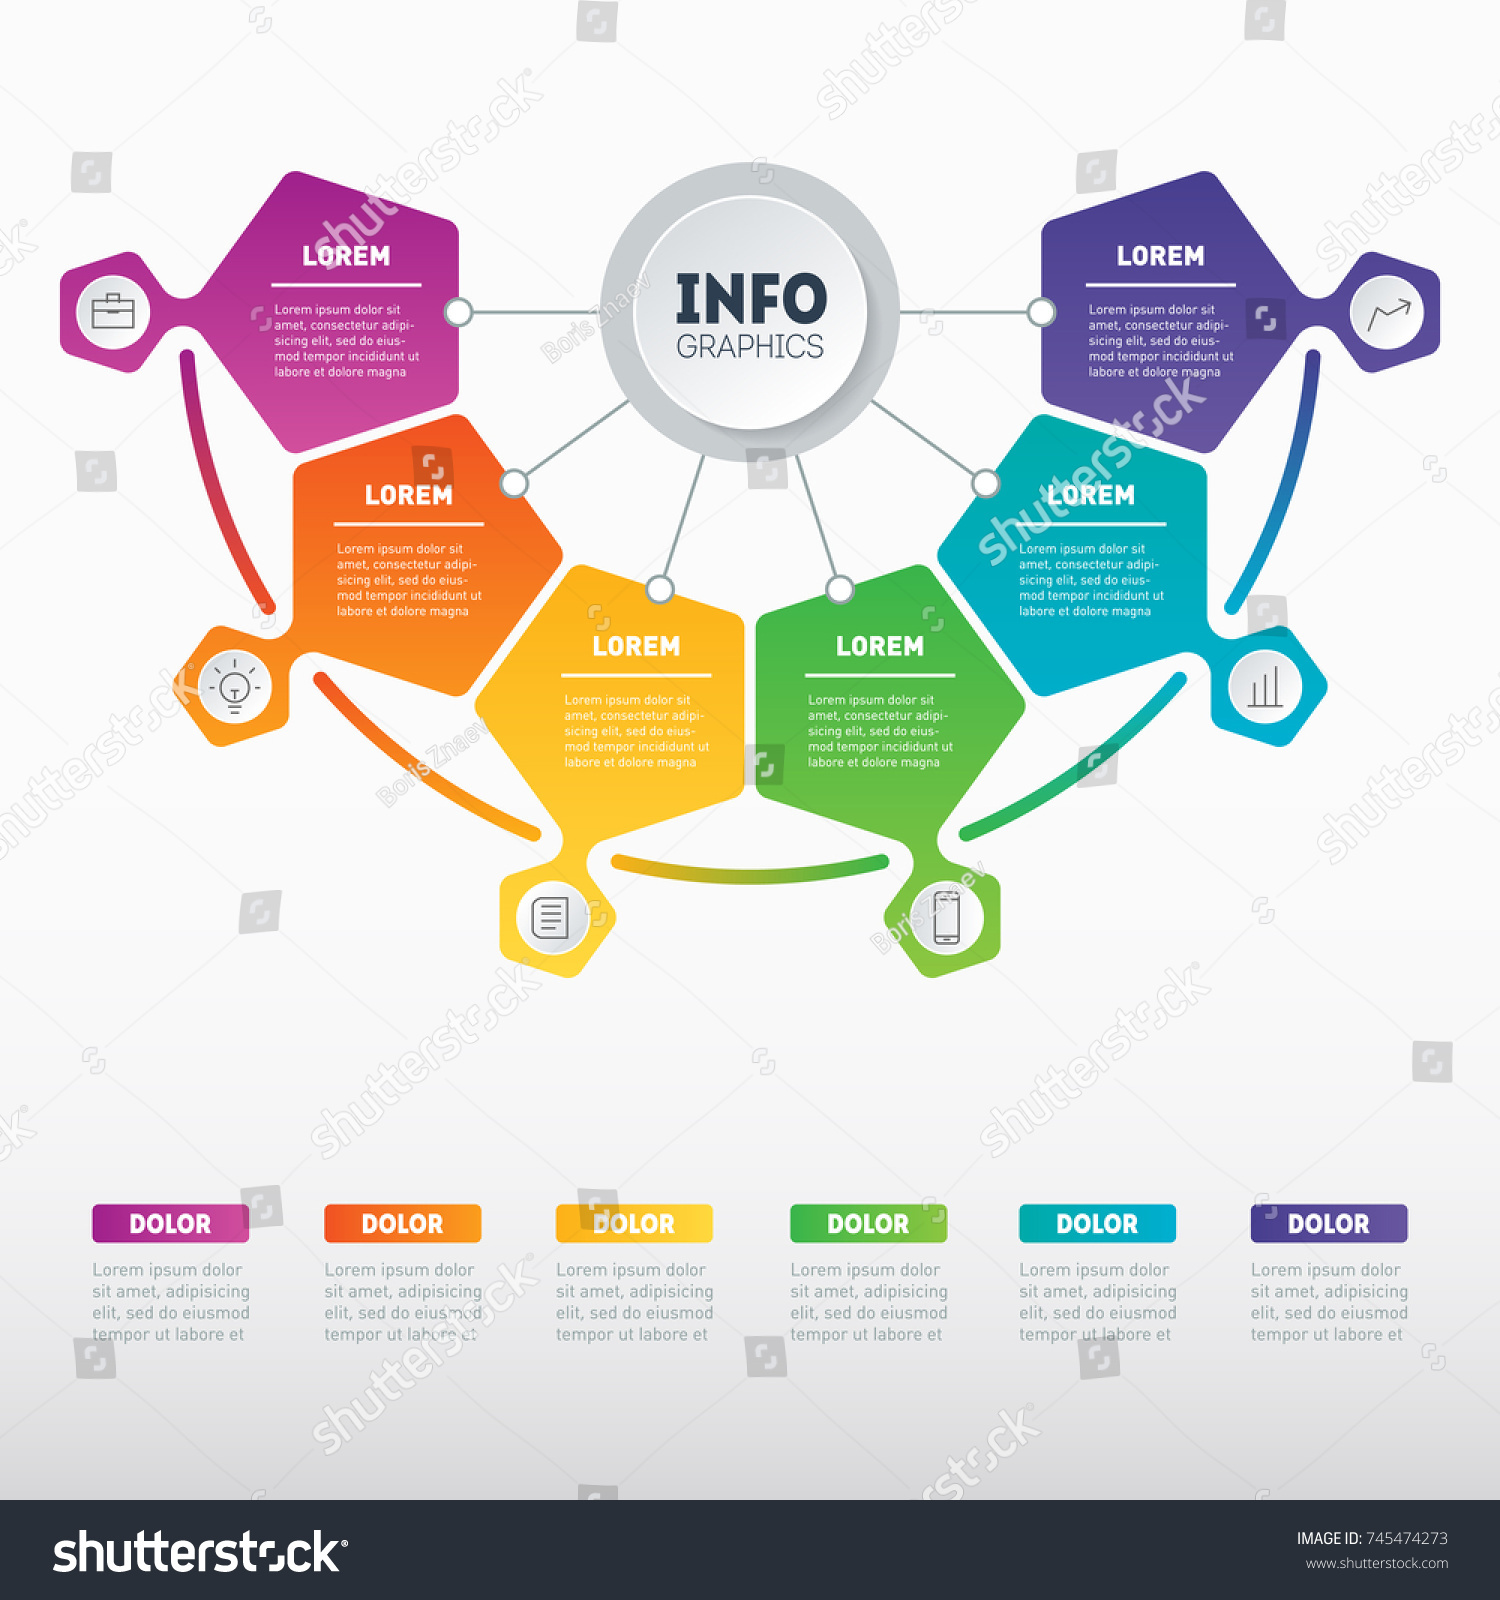 Best Mapping Software For Business Schematic Diagram Of